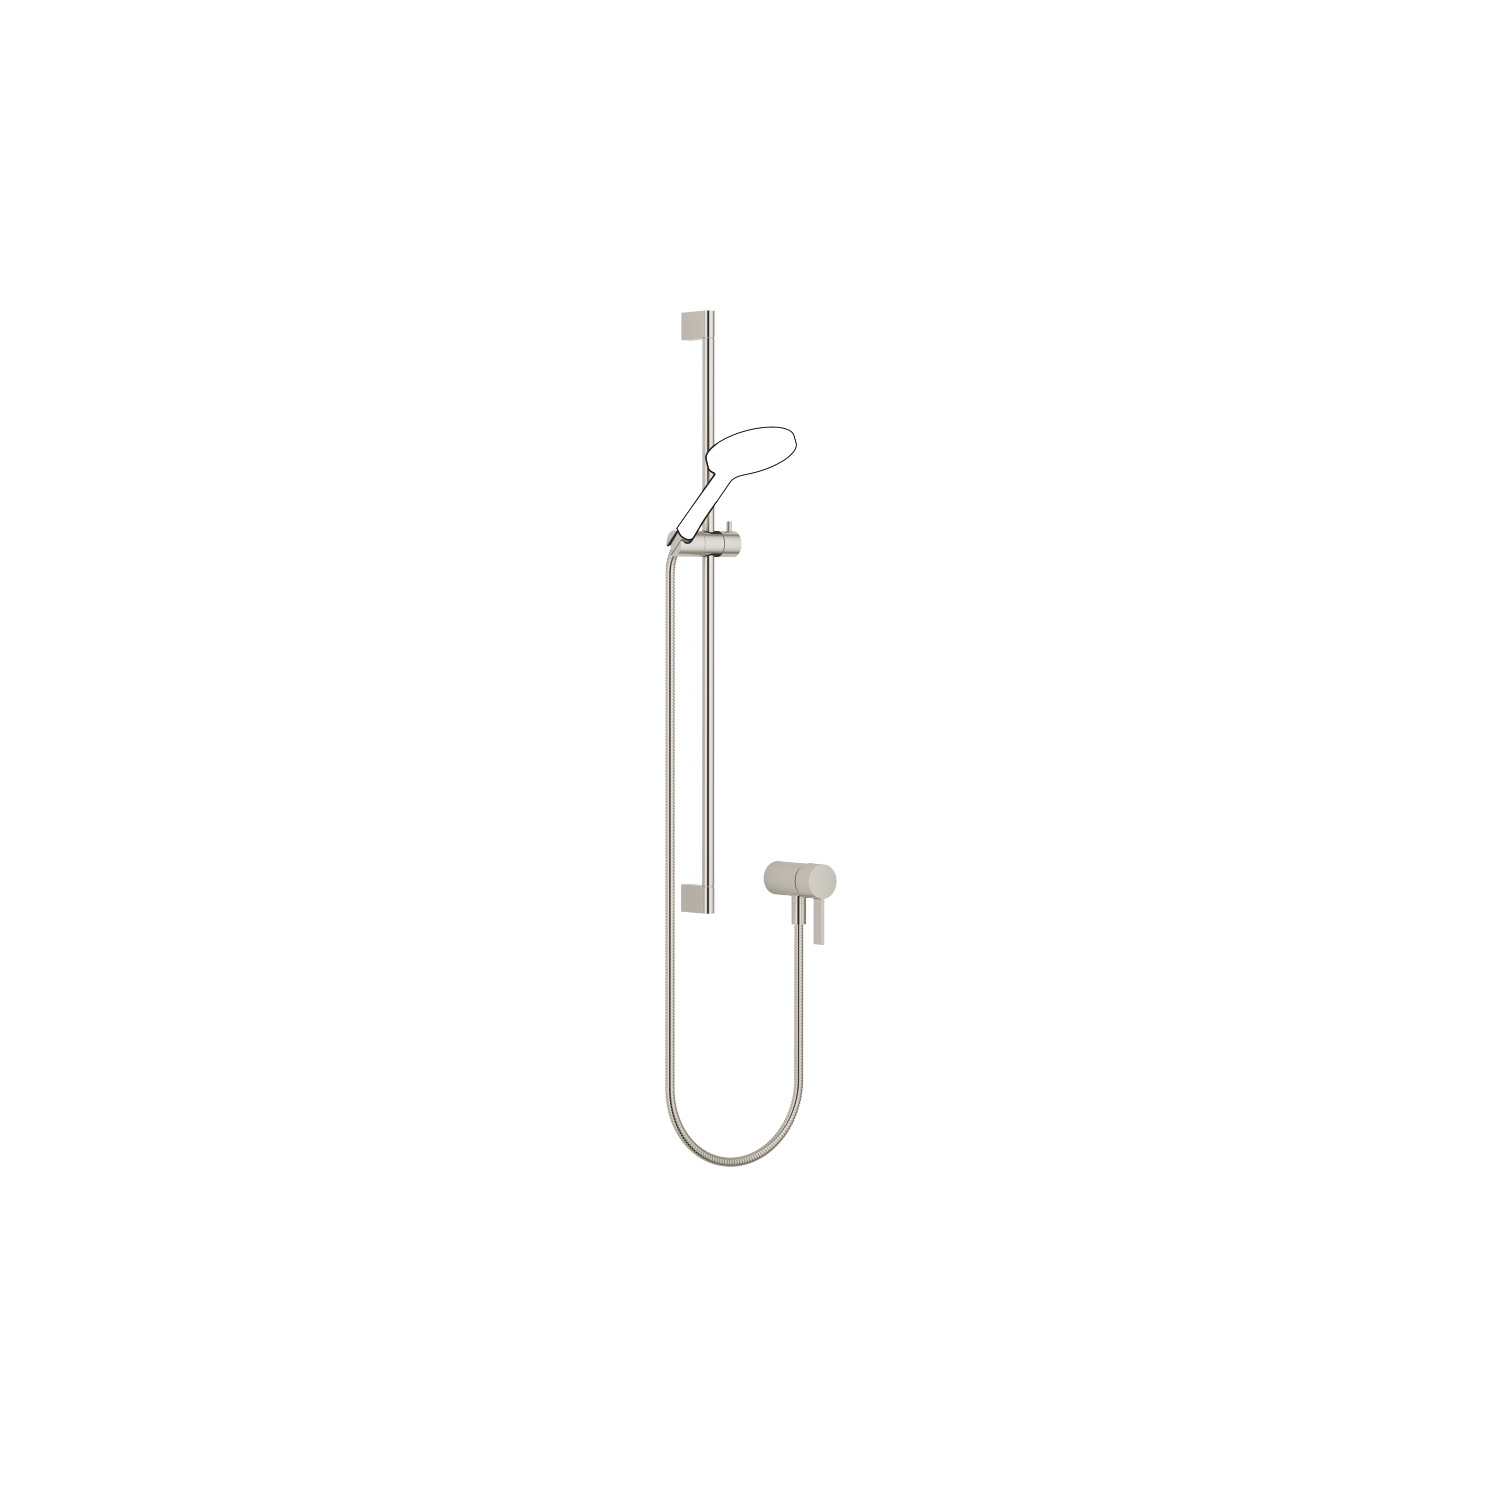 Concealed single-lever mixer with integrated shower connection with shower set - platinum matt - 36 110 970-06